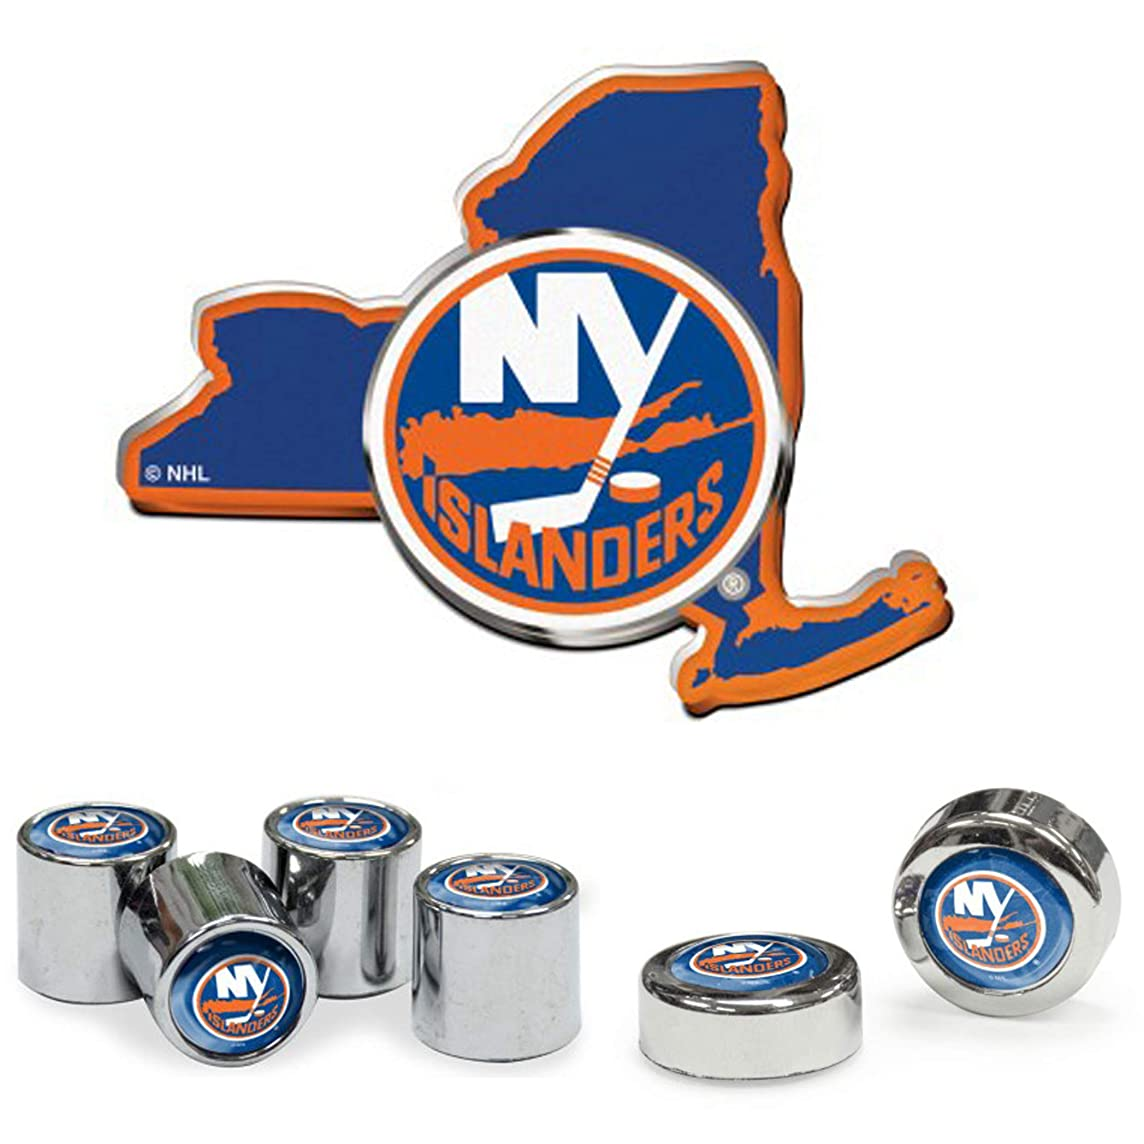 Wincraft New York Islanders Automotive Gift Set 1 Premium Decal, 4 Valve Stem Caps, and 2 License Plate Screw Covers